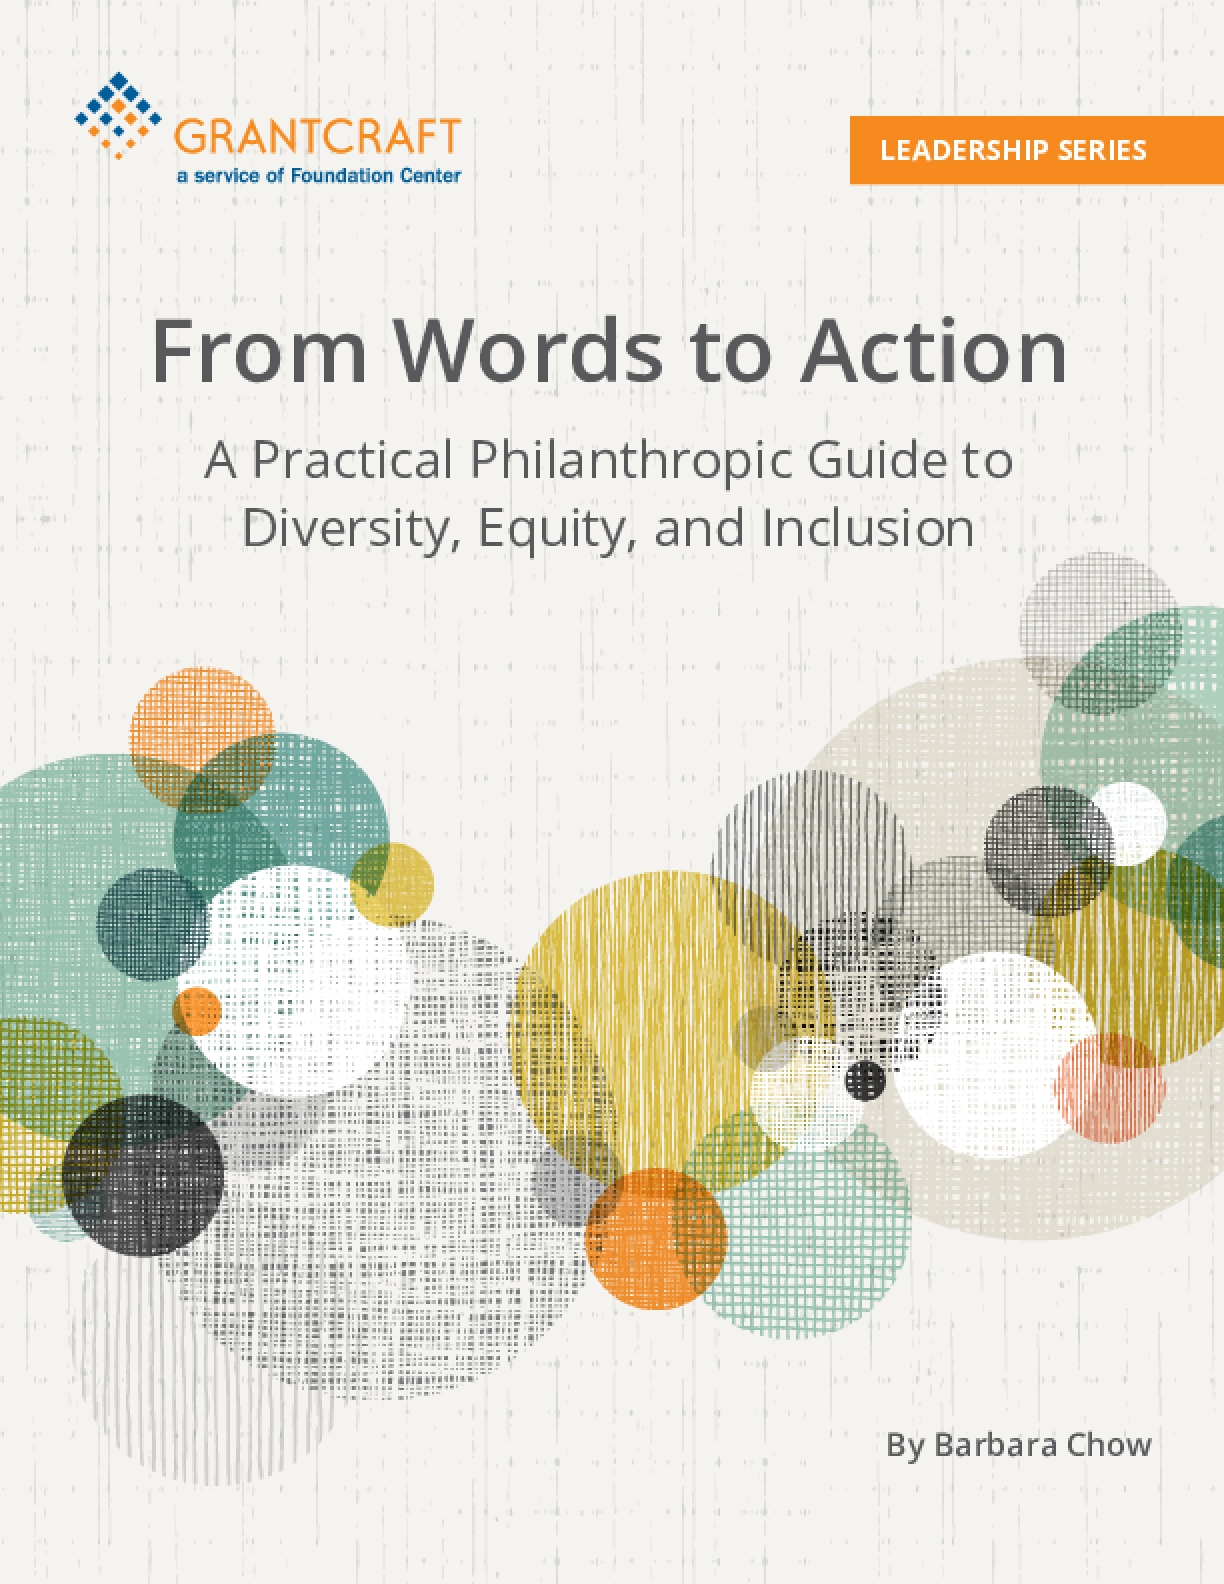 From Words to Action: A Practical Philanthropic Guide to Diversity, Equity, and Inclusion